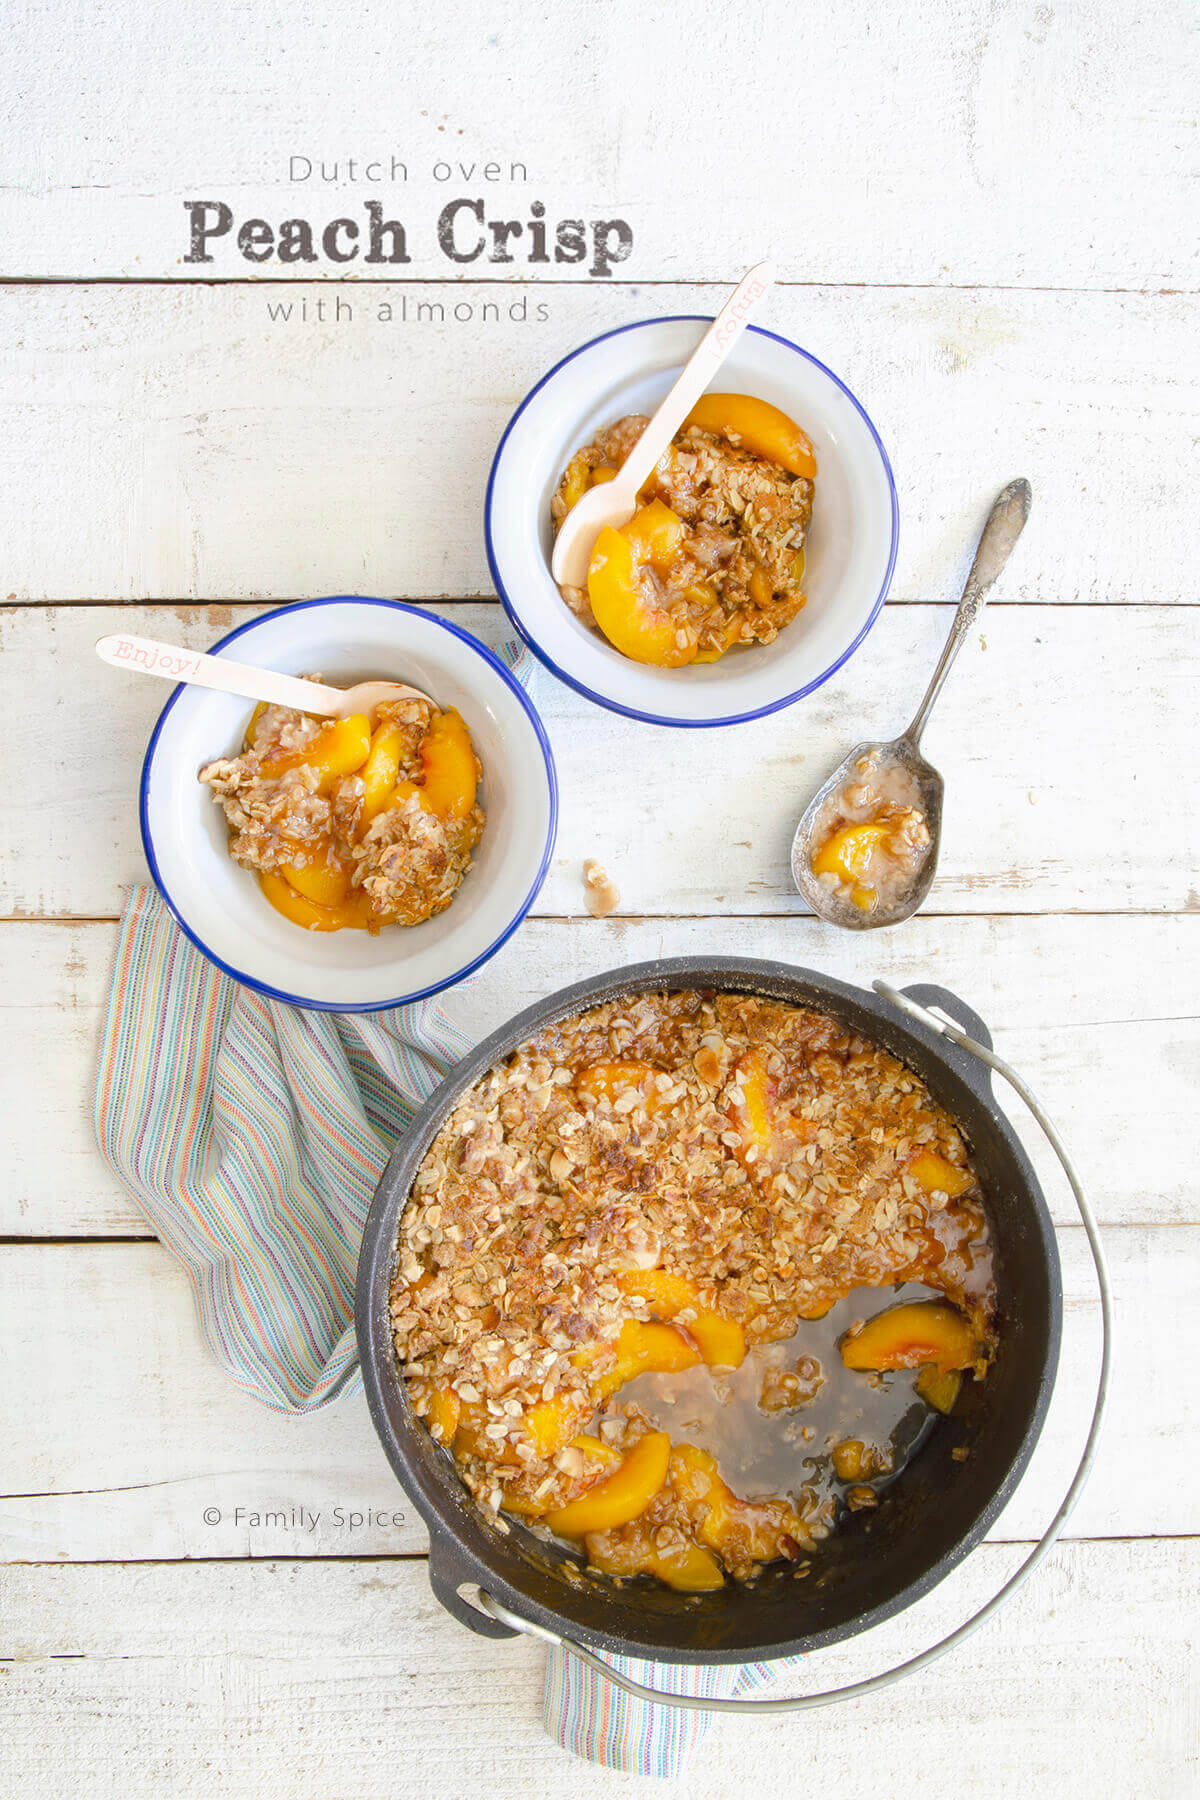 Overhead shot of Dutch oven peach crisp with almonds by FamilySpice.com